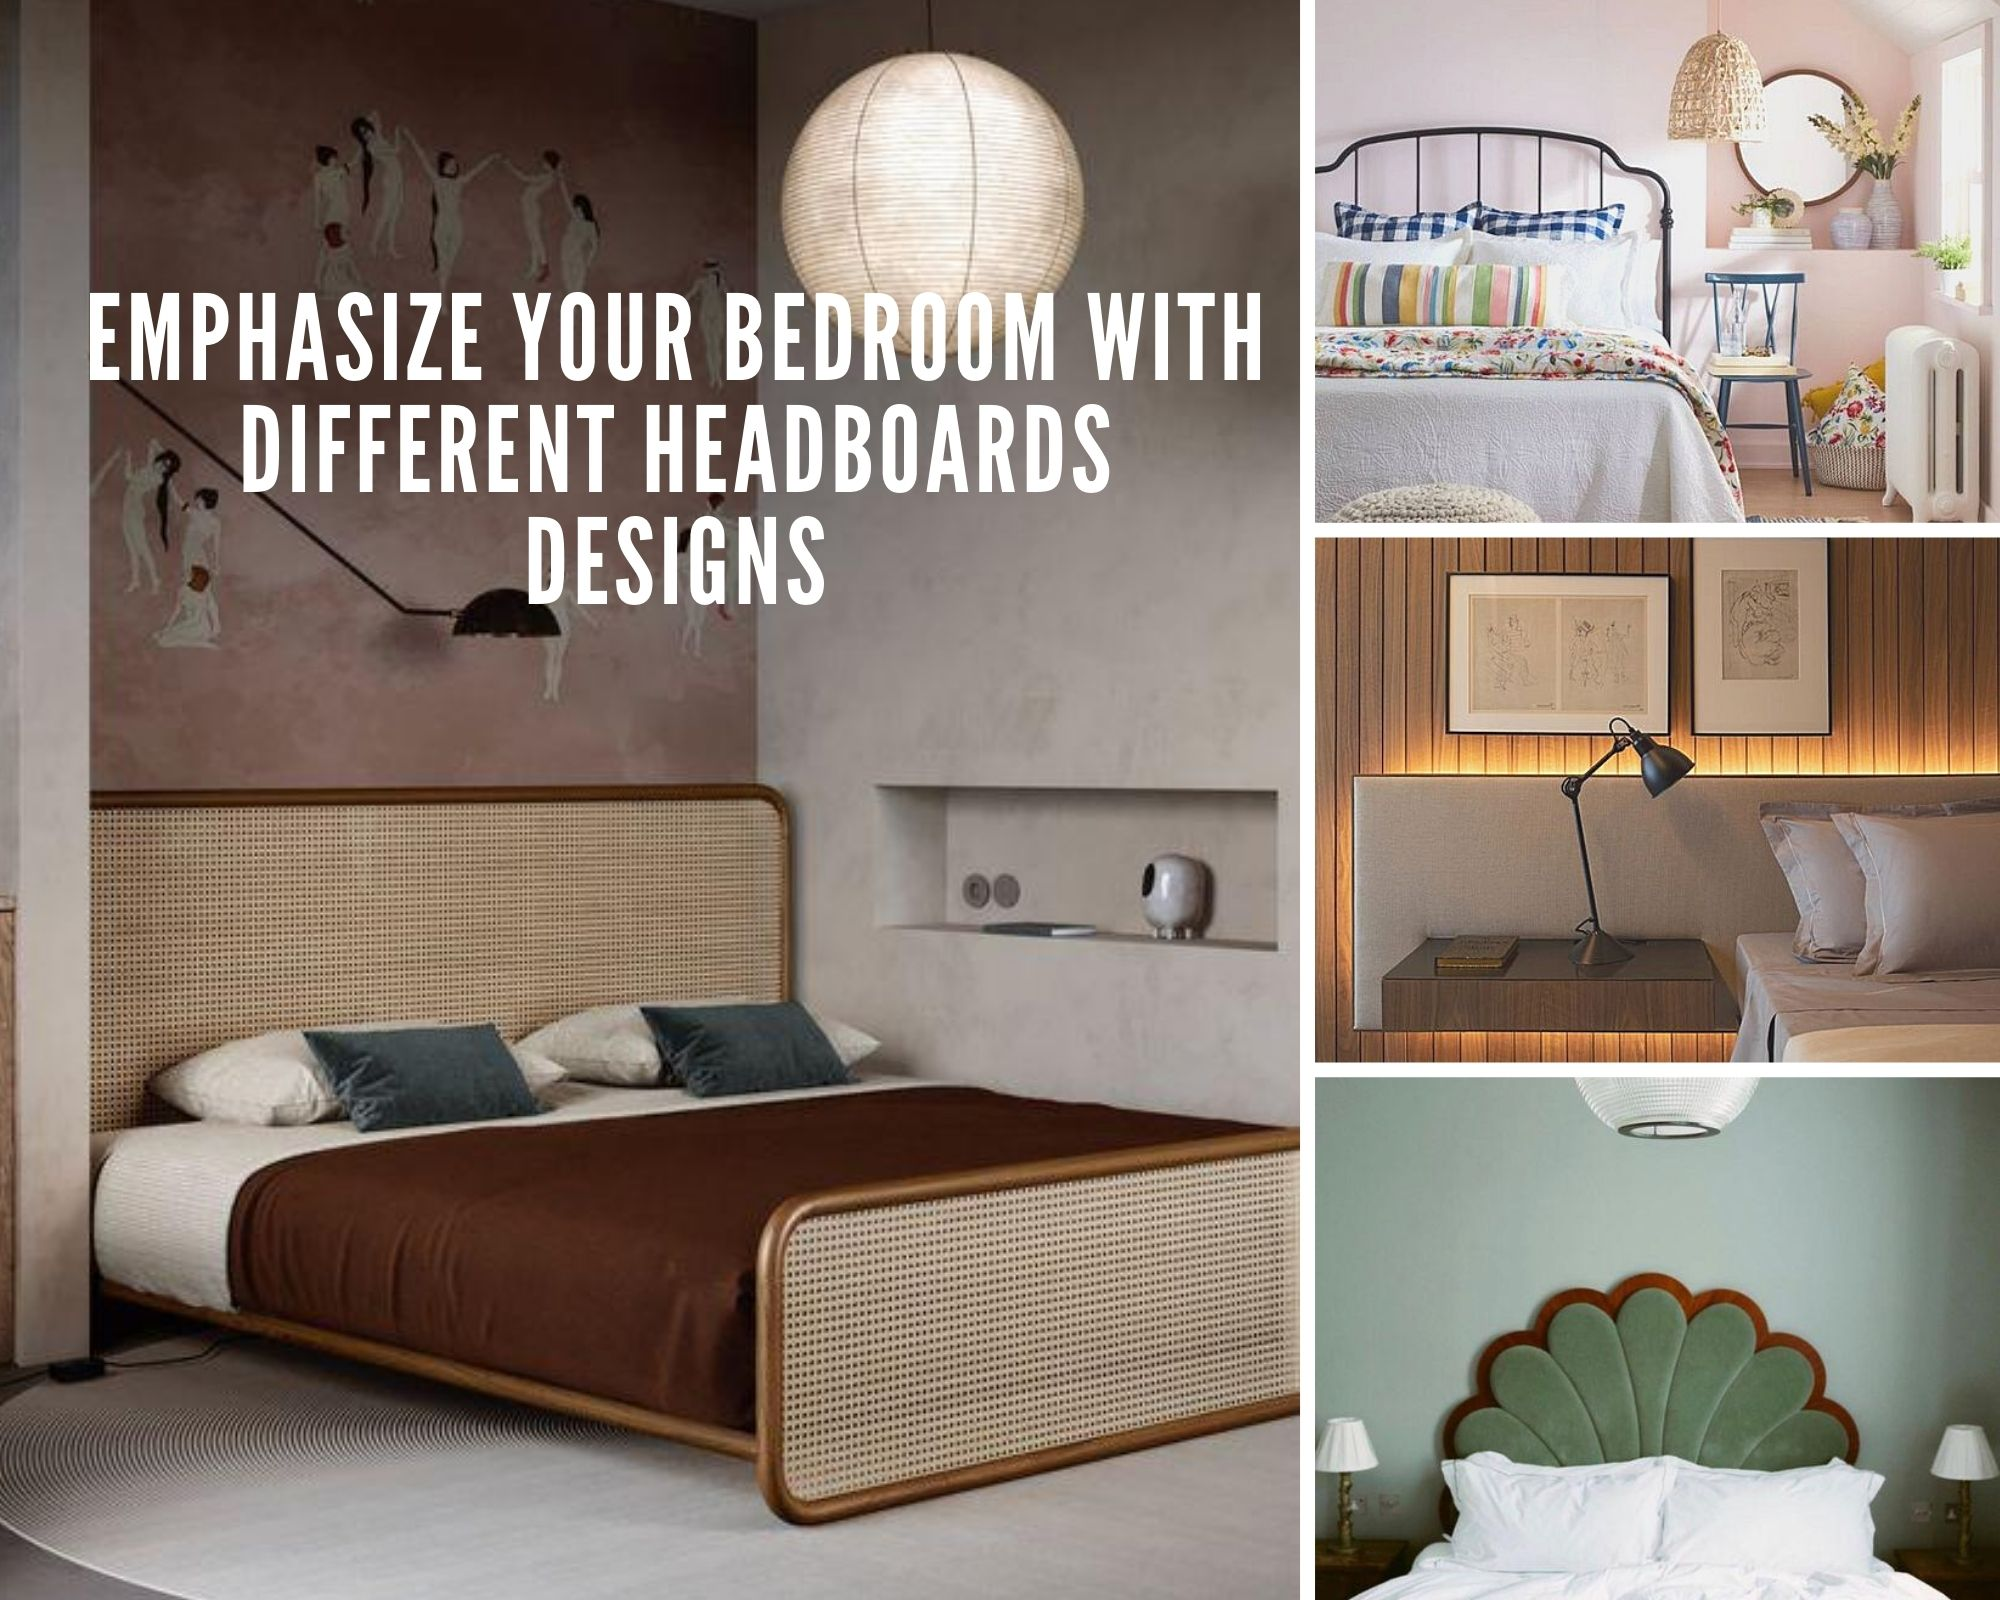 Emphasize Your Bedroom With Different Headboard Designs Design Lifestyle Blog